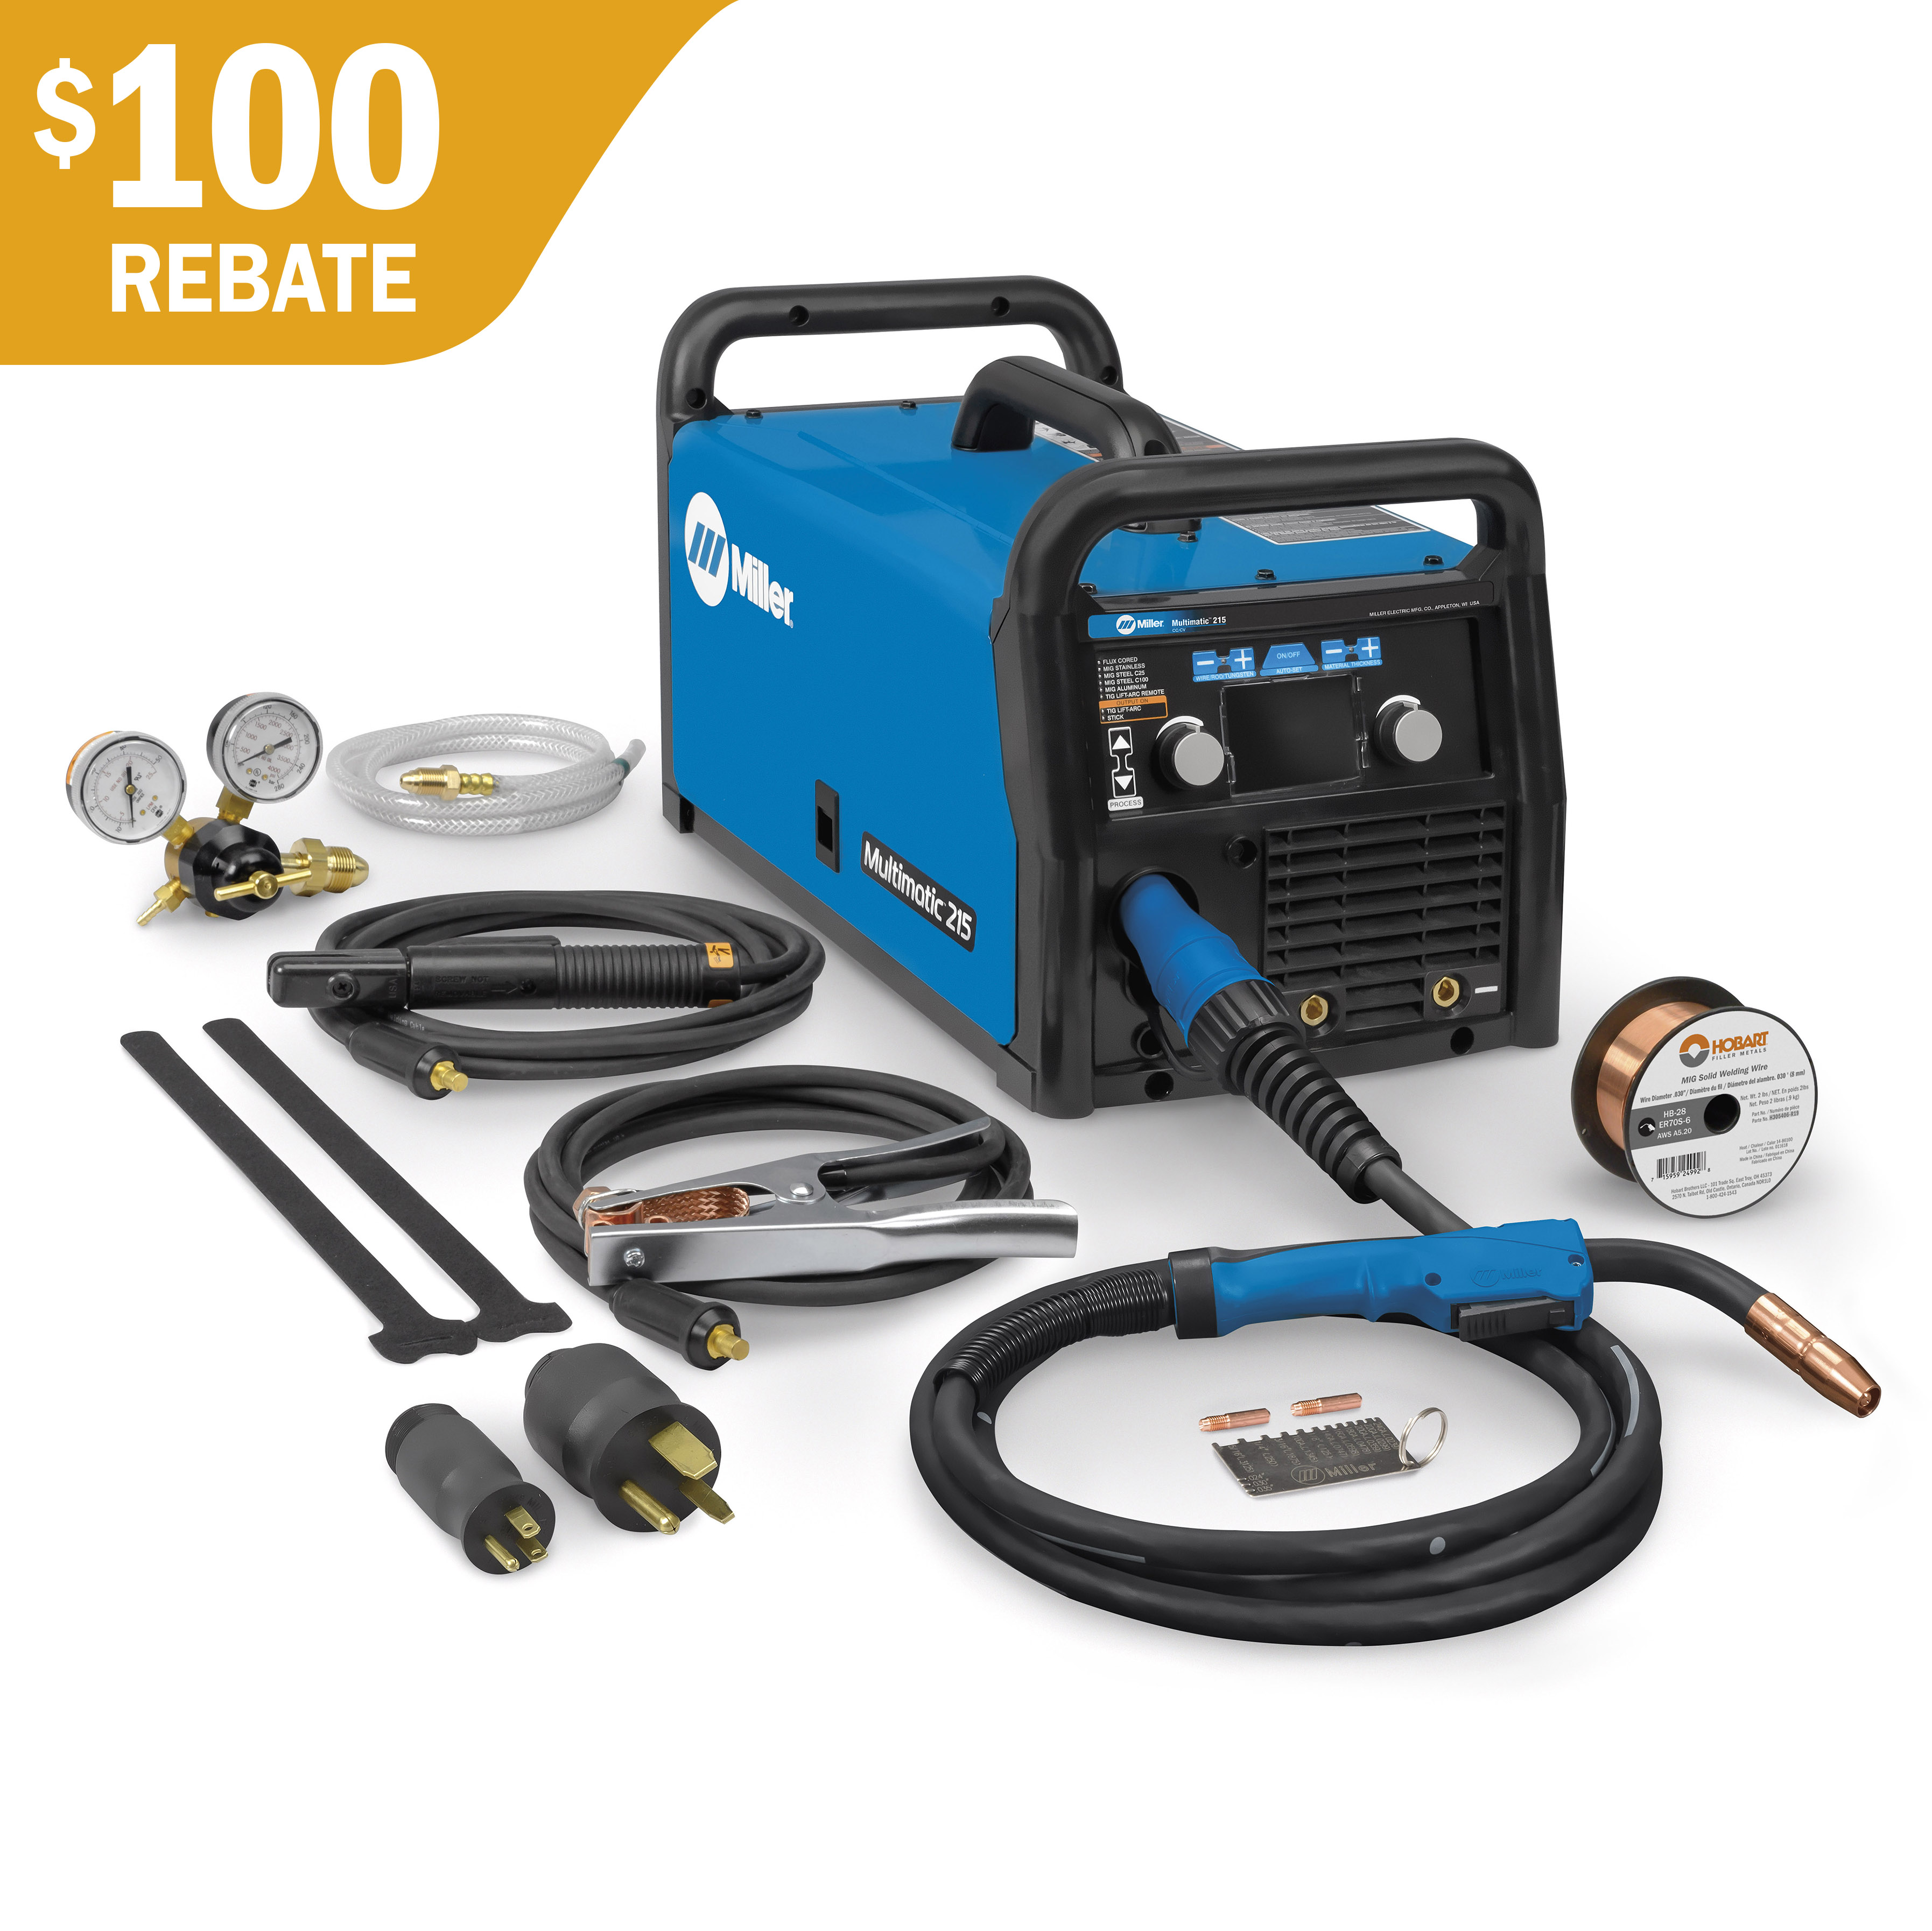 small resolution of multimatic 215 package 907693 rebate